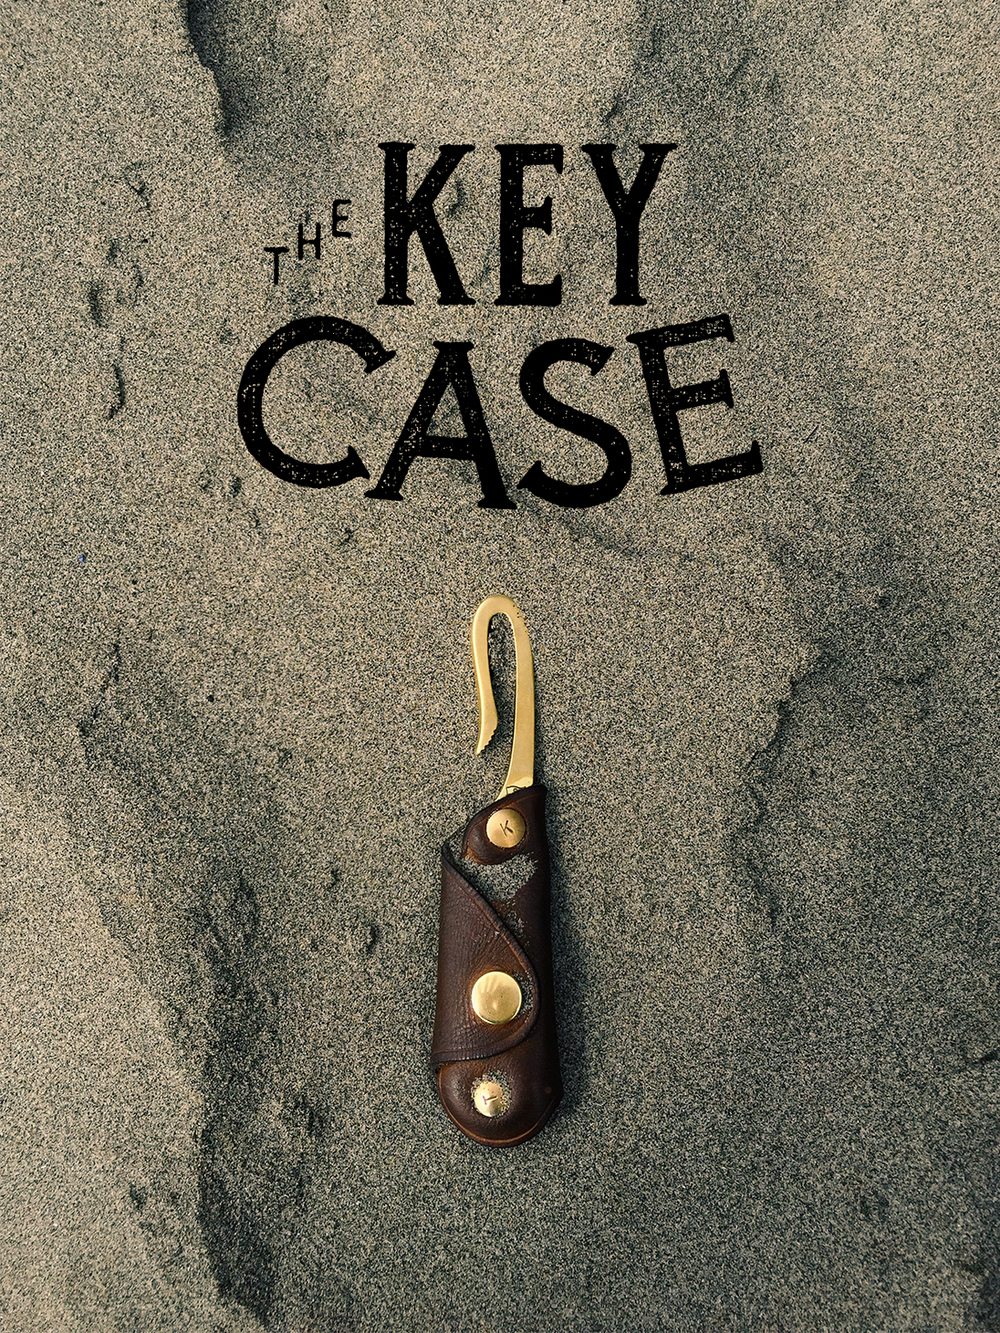 kimberlin key case.jpg